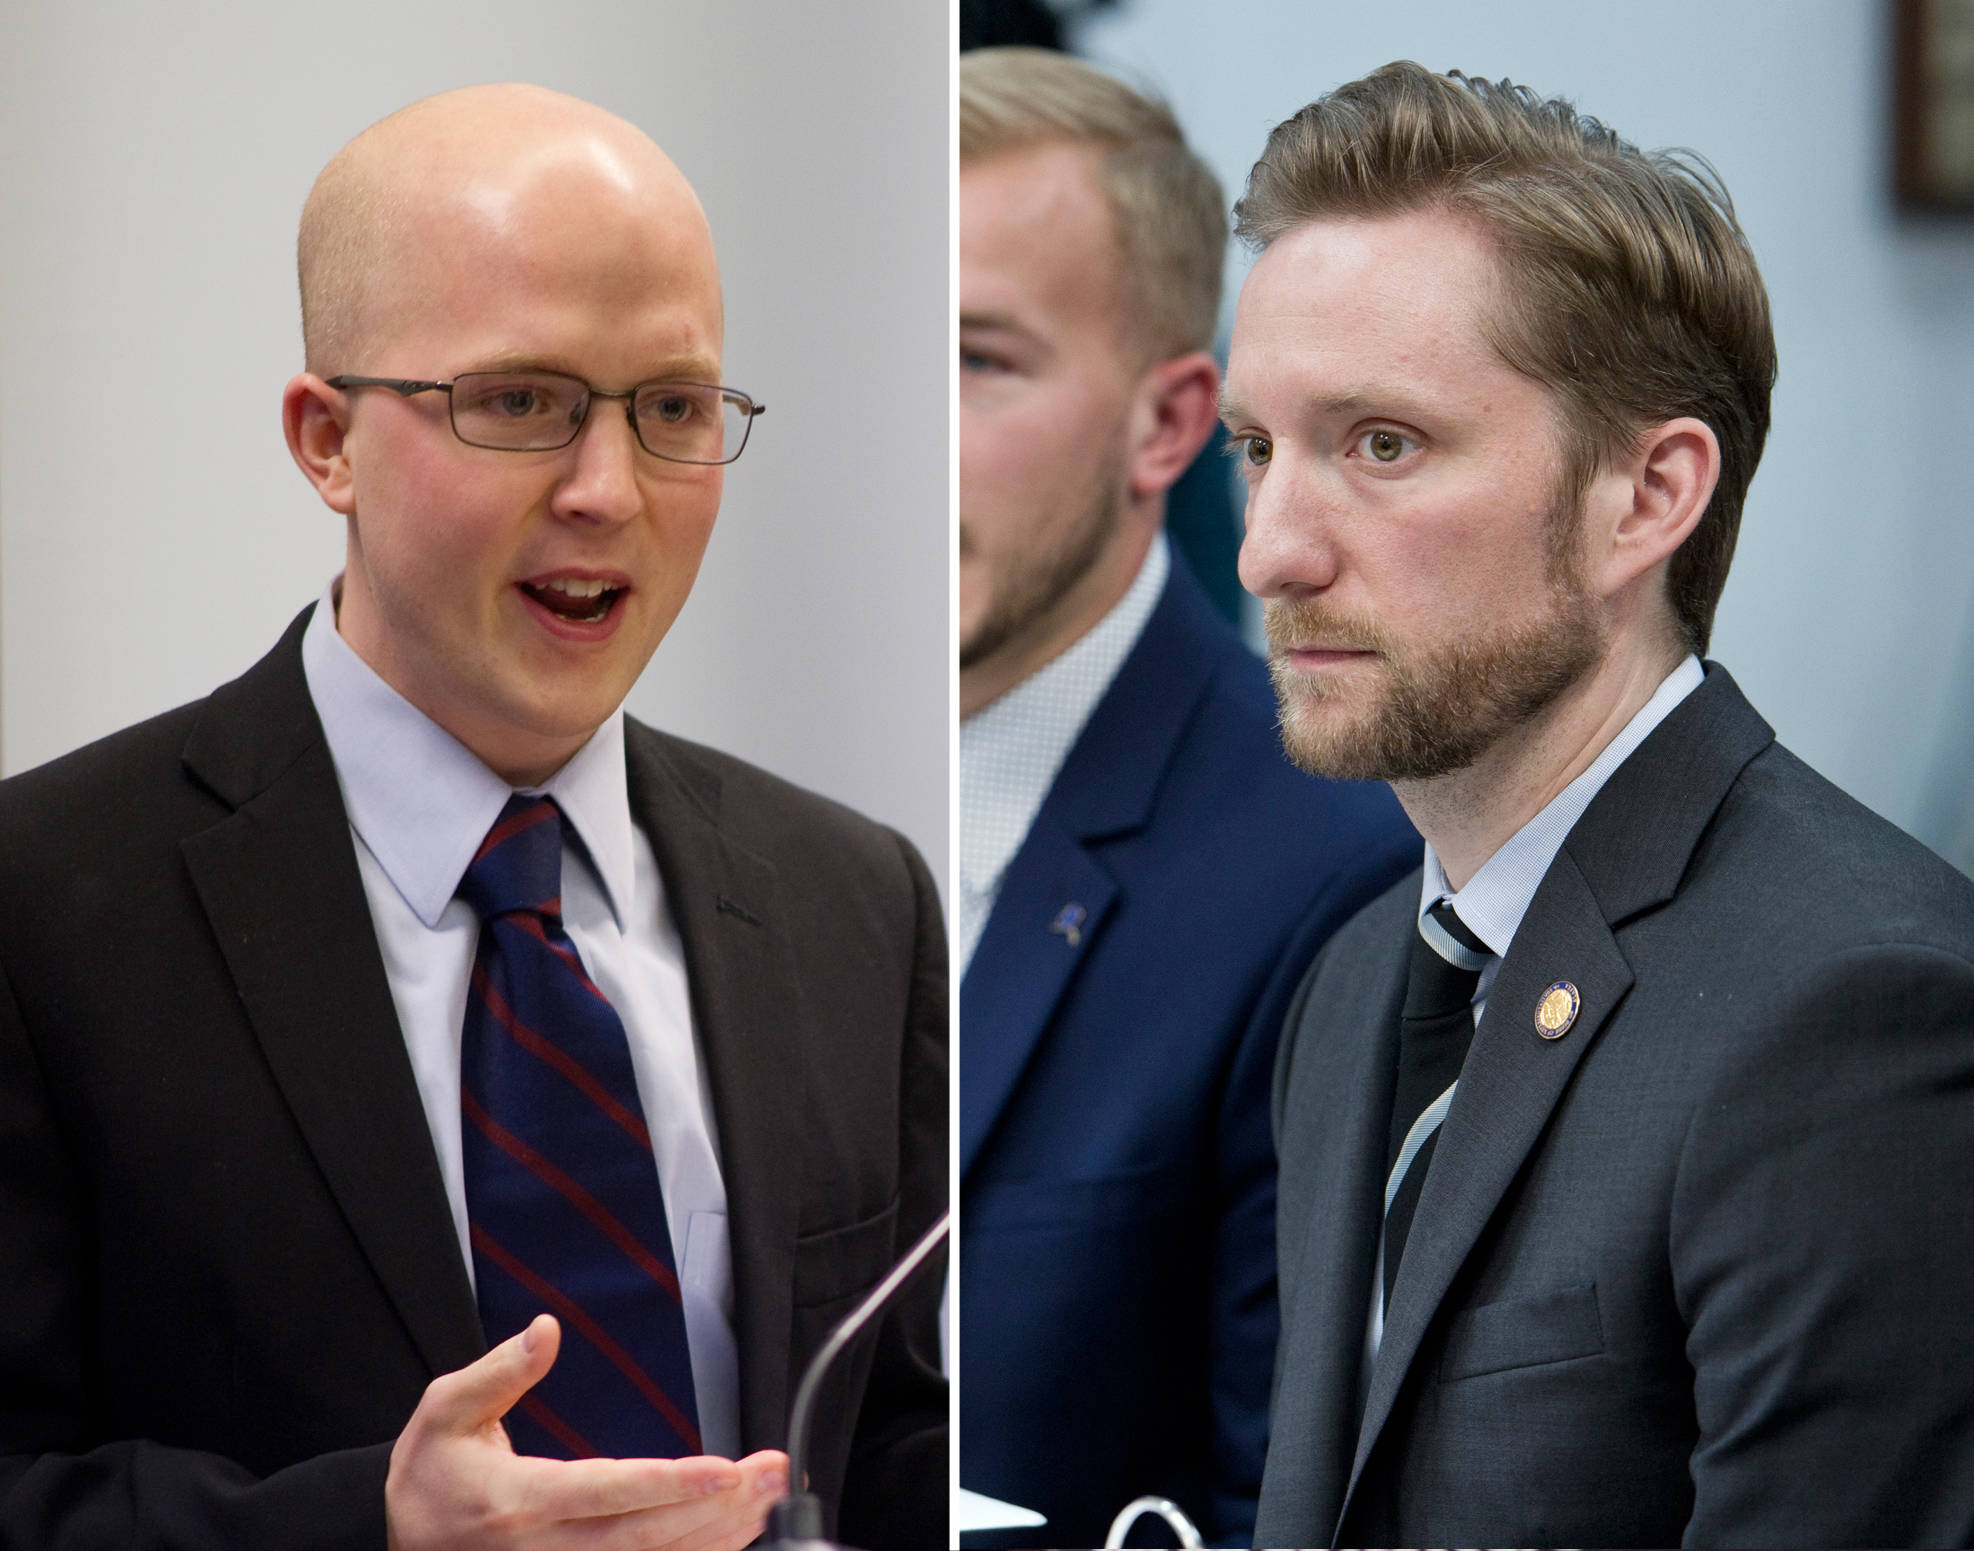 JUNEAU EMPIRE COMPOSITE  Rep. Jonathan Kreiss-Tomkins, D-Sitka, left, and Rep. Jason Grenn, I-Anchorage, right, are two of the three co-chairs (with Bonnie Jack of Anchorage) of a new ballot initiative that targets legislative prerogatives.